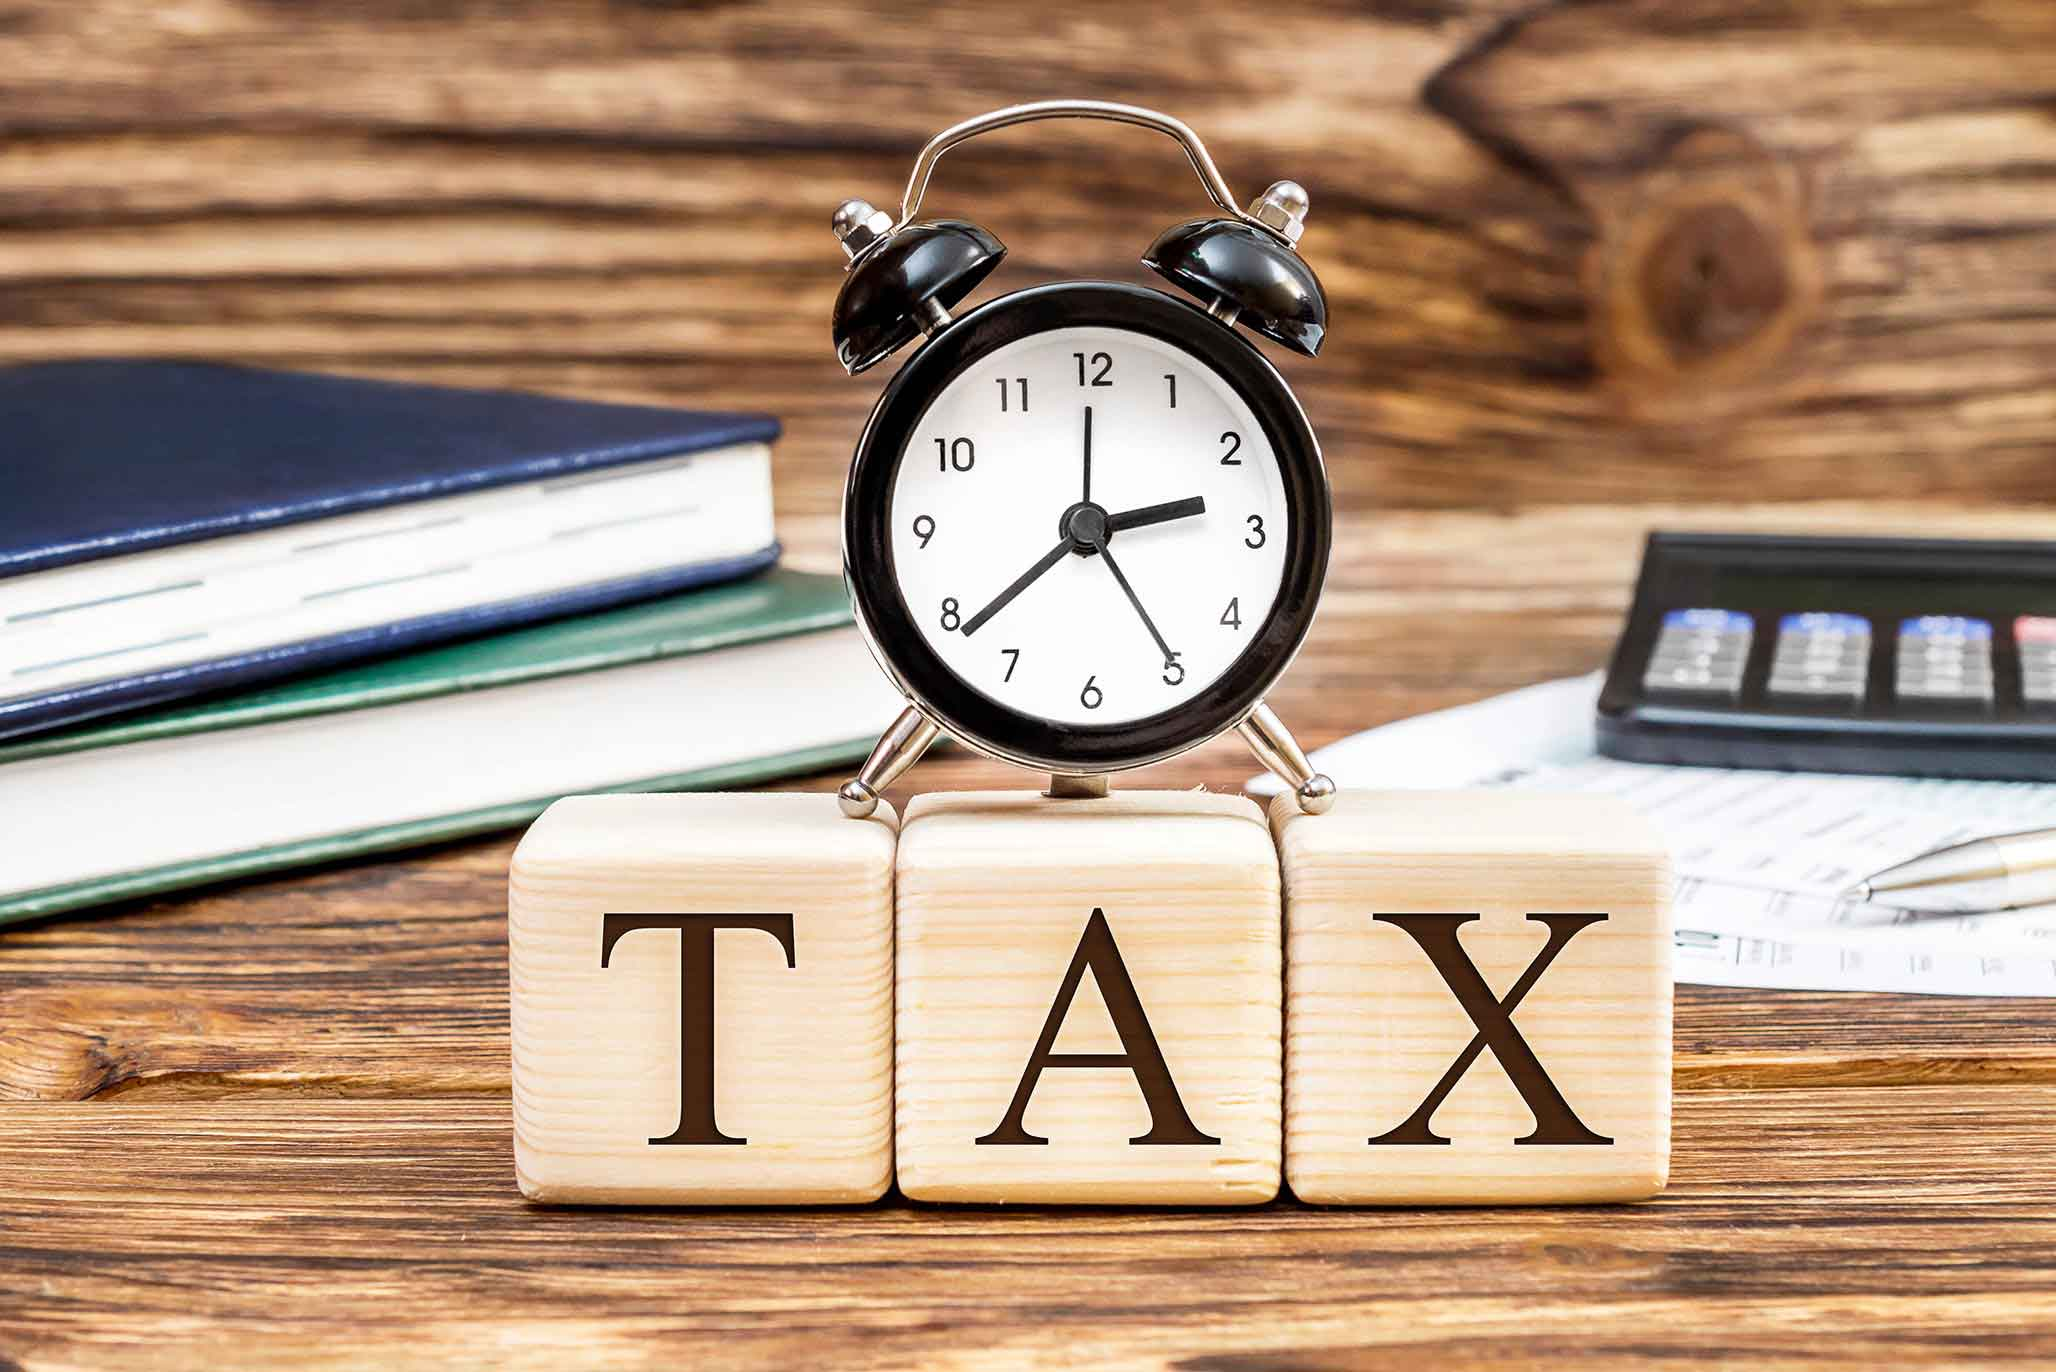 Step by Step guide to Filing Income Tax Returns this Year | Aviva India Blog